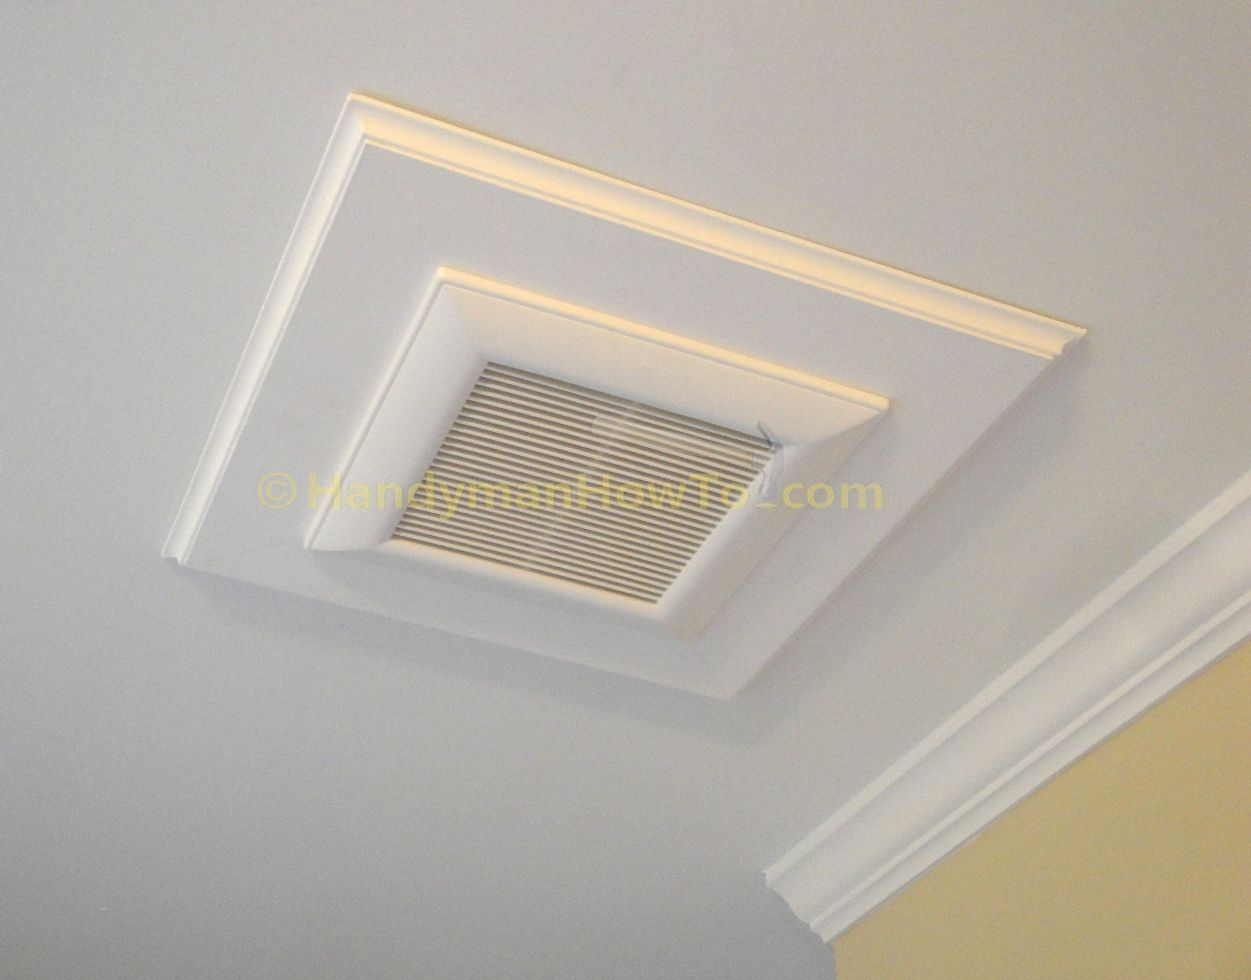 Bathroom Vent Fan Decorative Wood Trim To Conceal A Gap In The Drywall Bathroom Vent Bathroom Vent Fan Bathroom Exhaust Fan